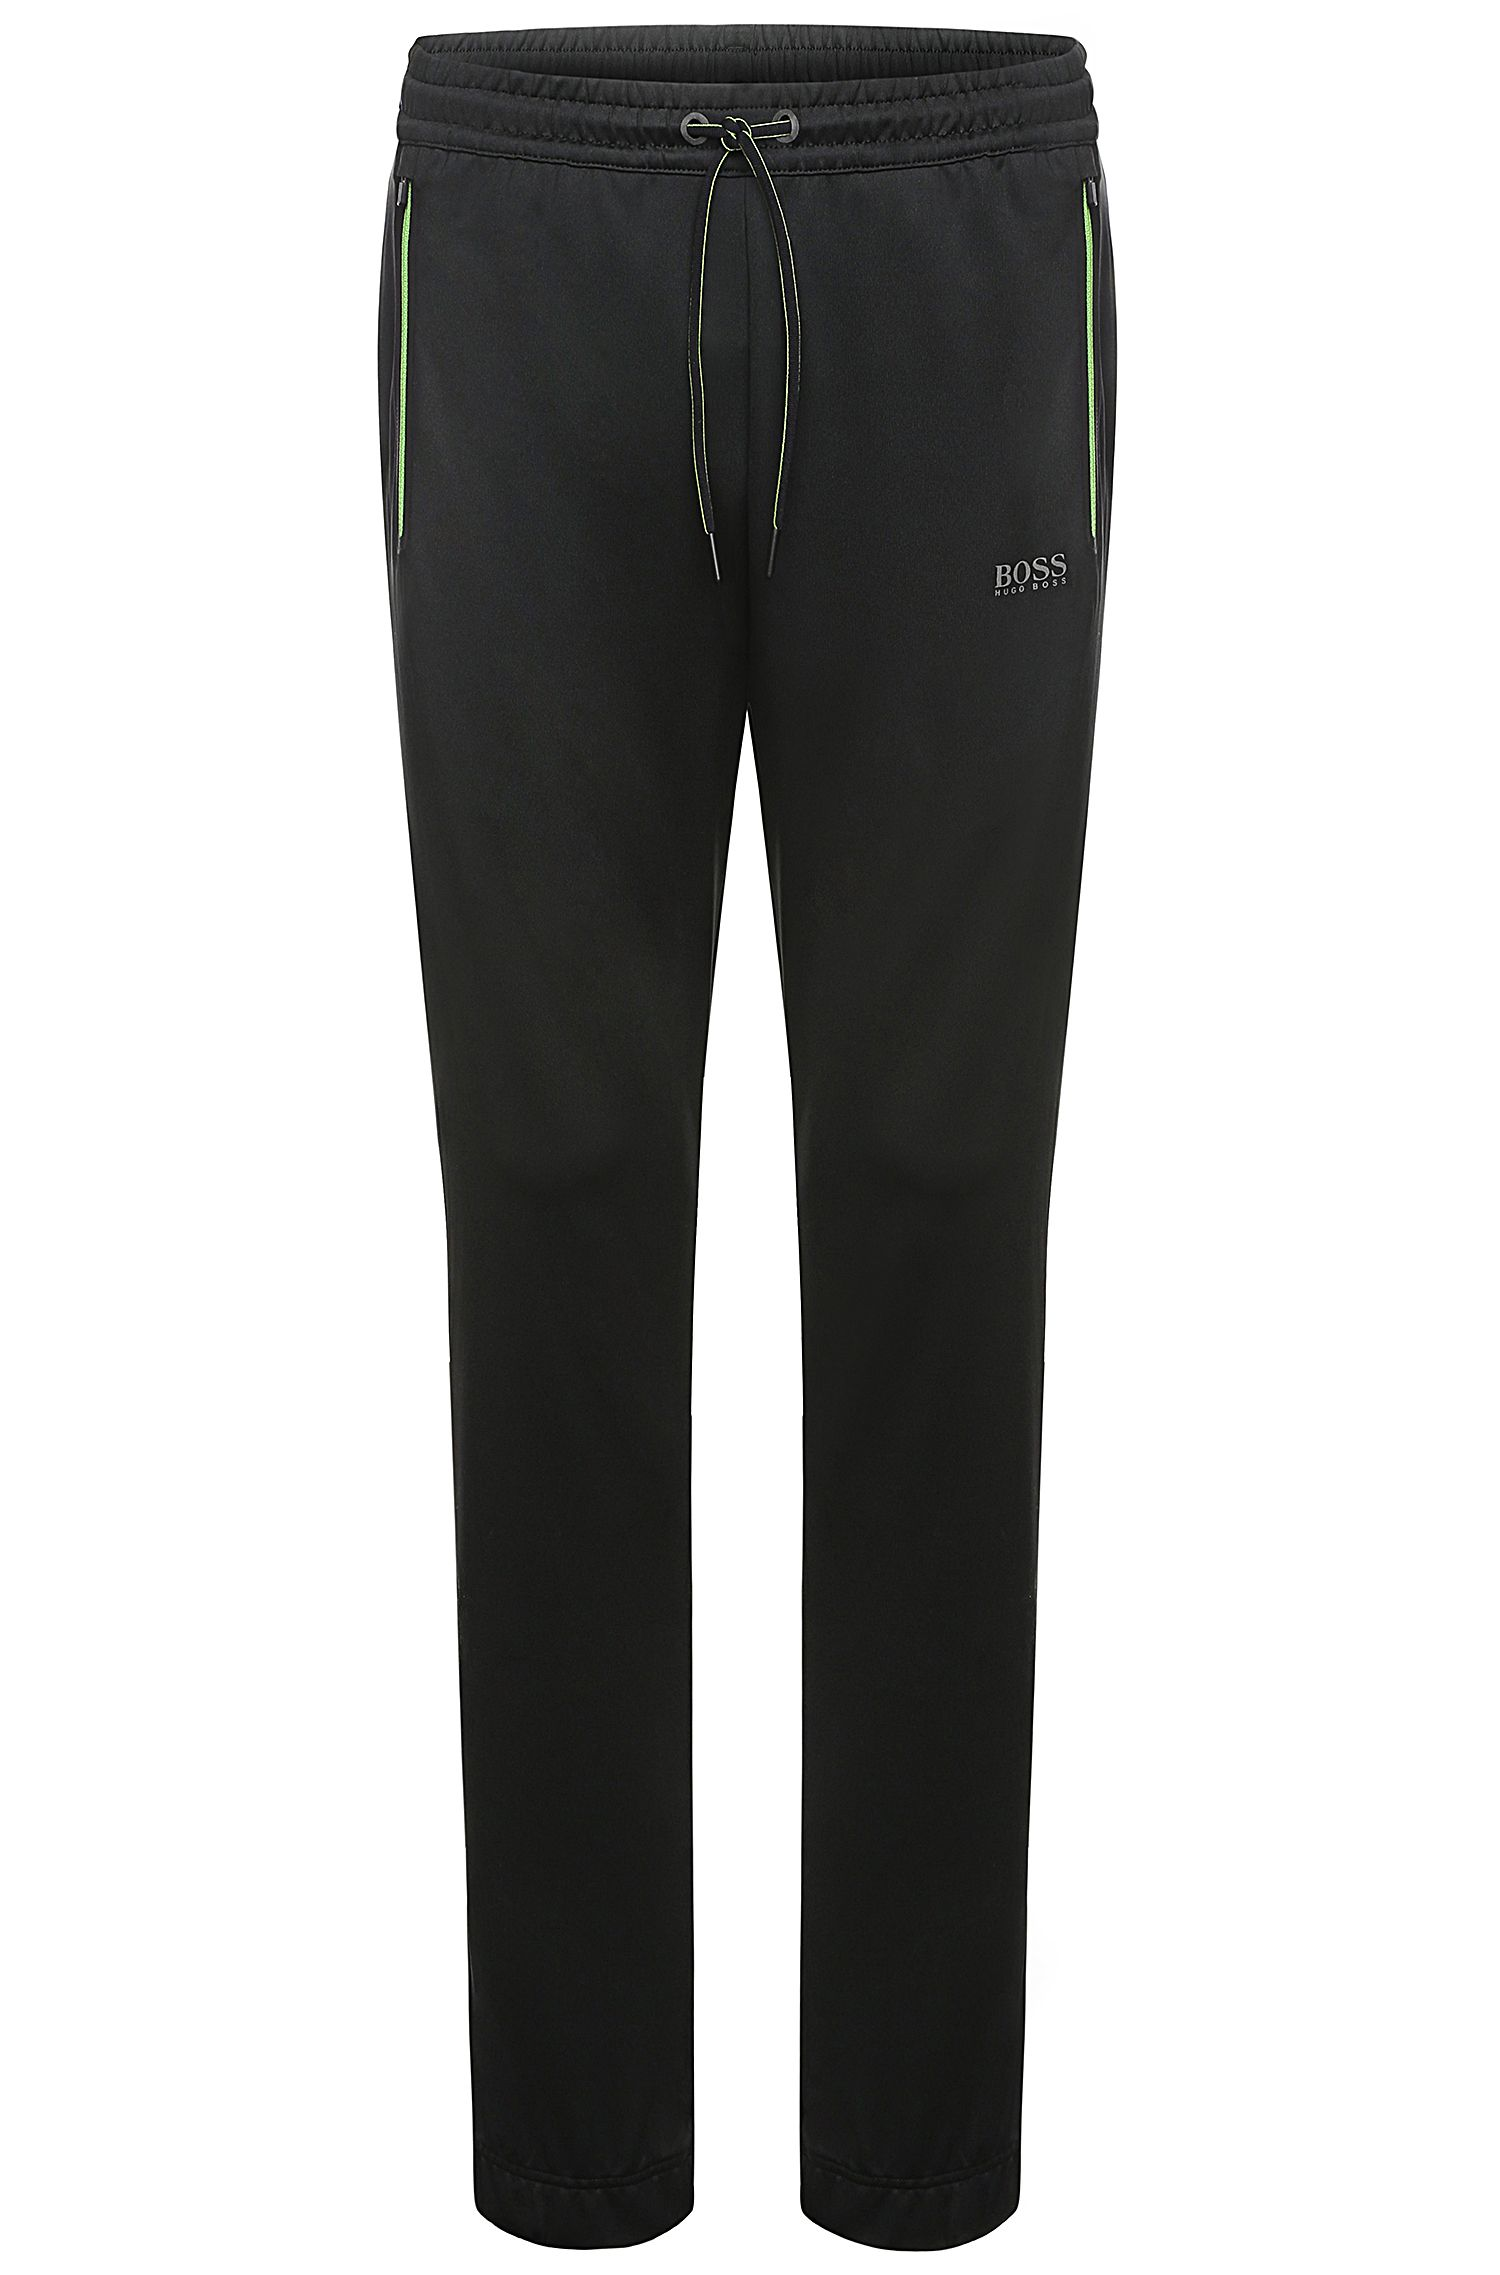 'Horatech' | Stretch Drawstring Track Pants